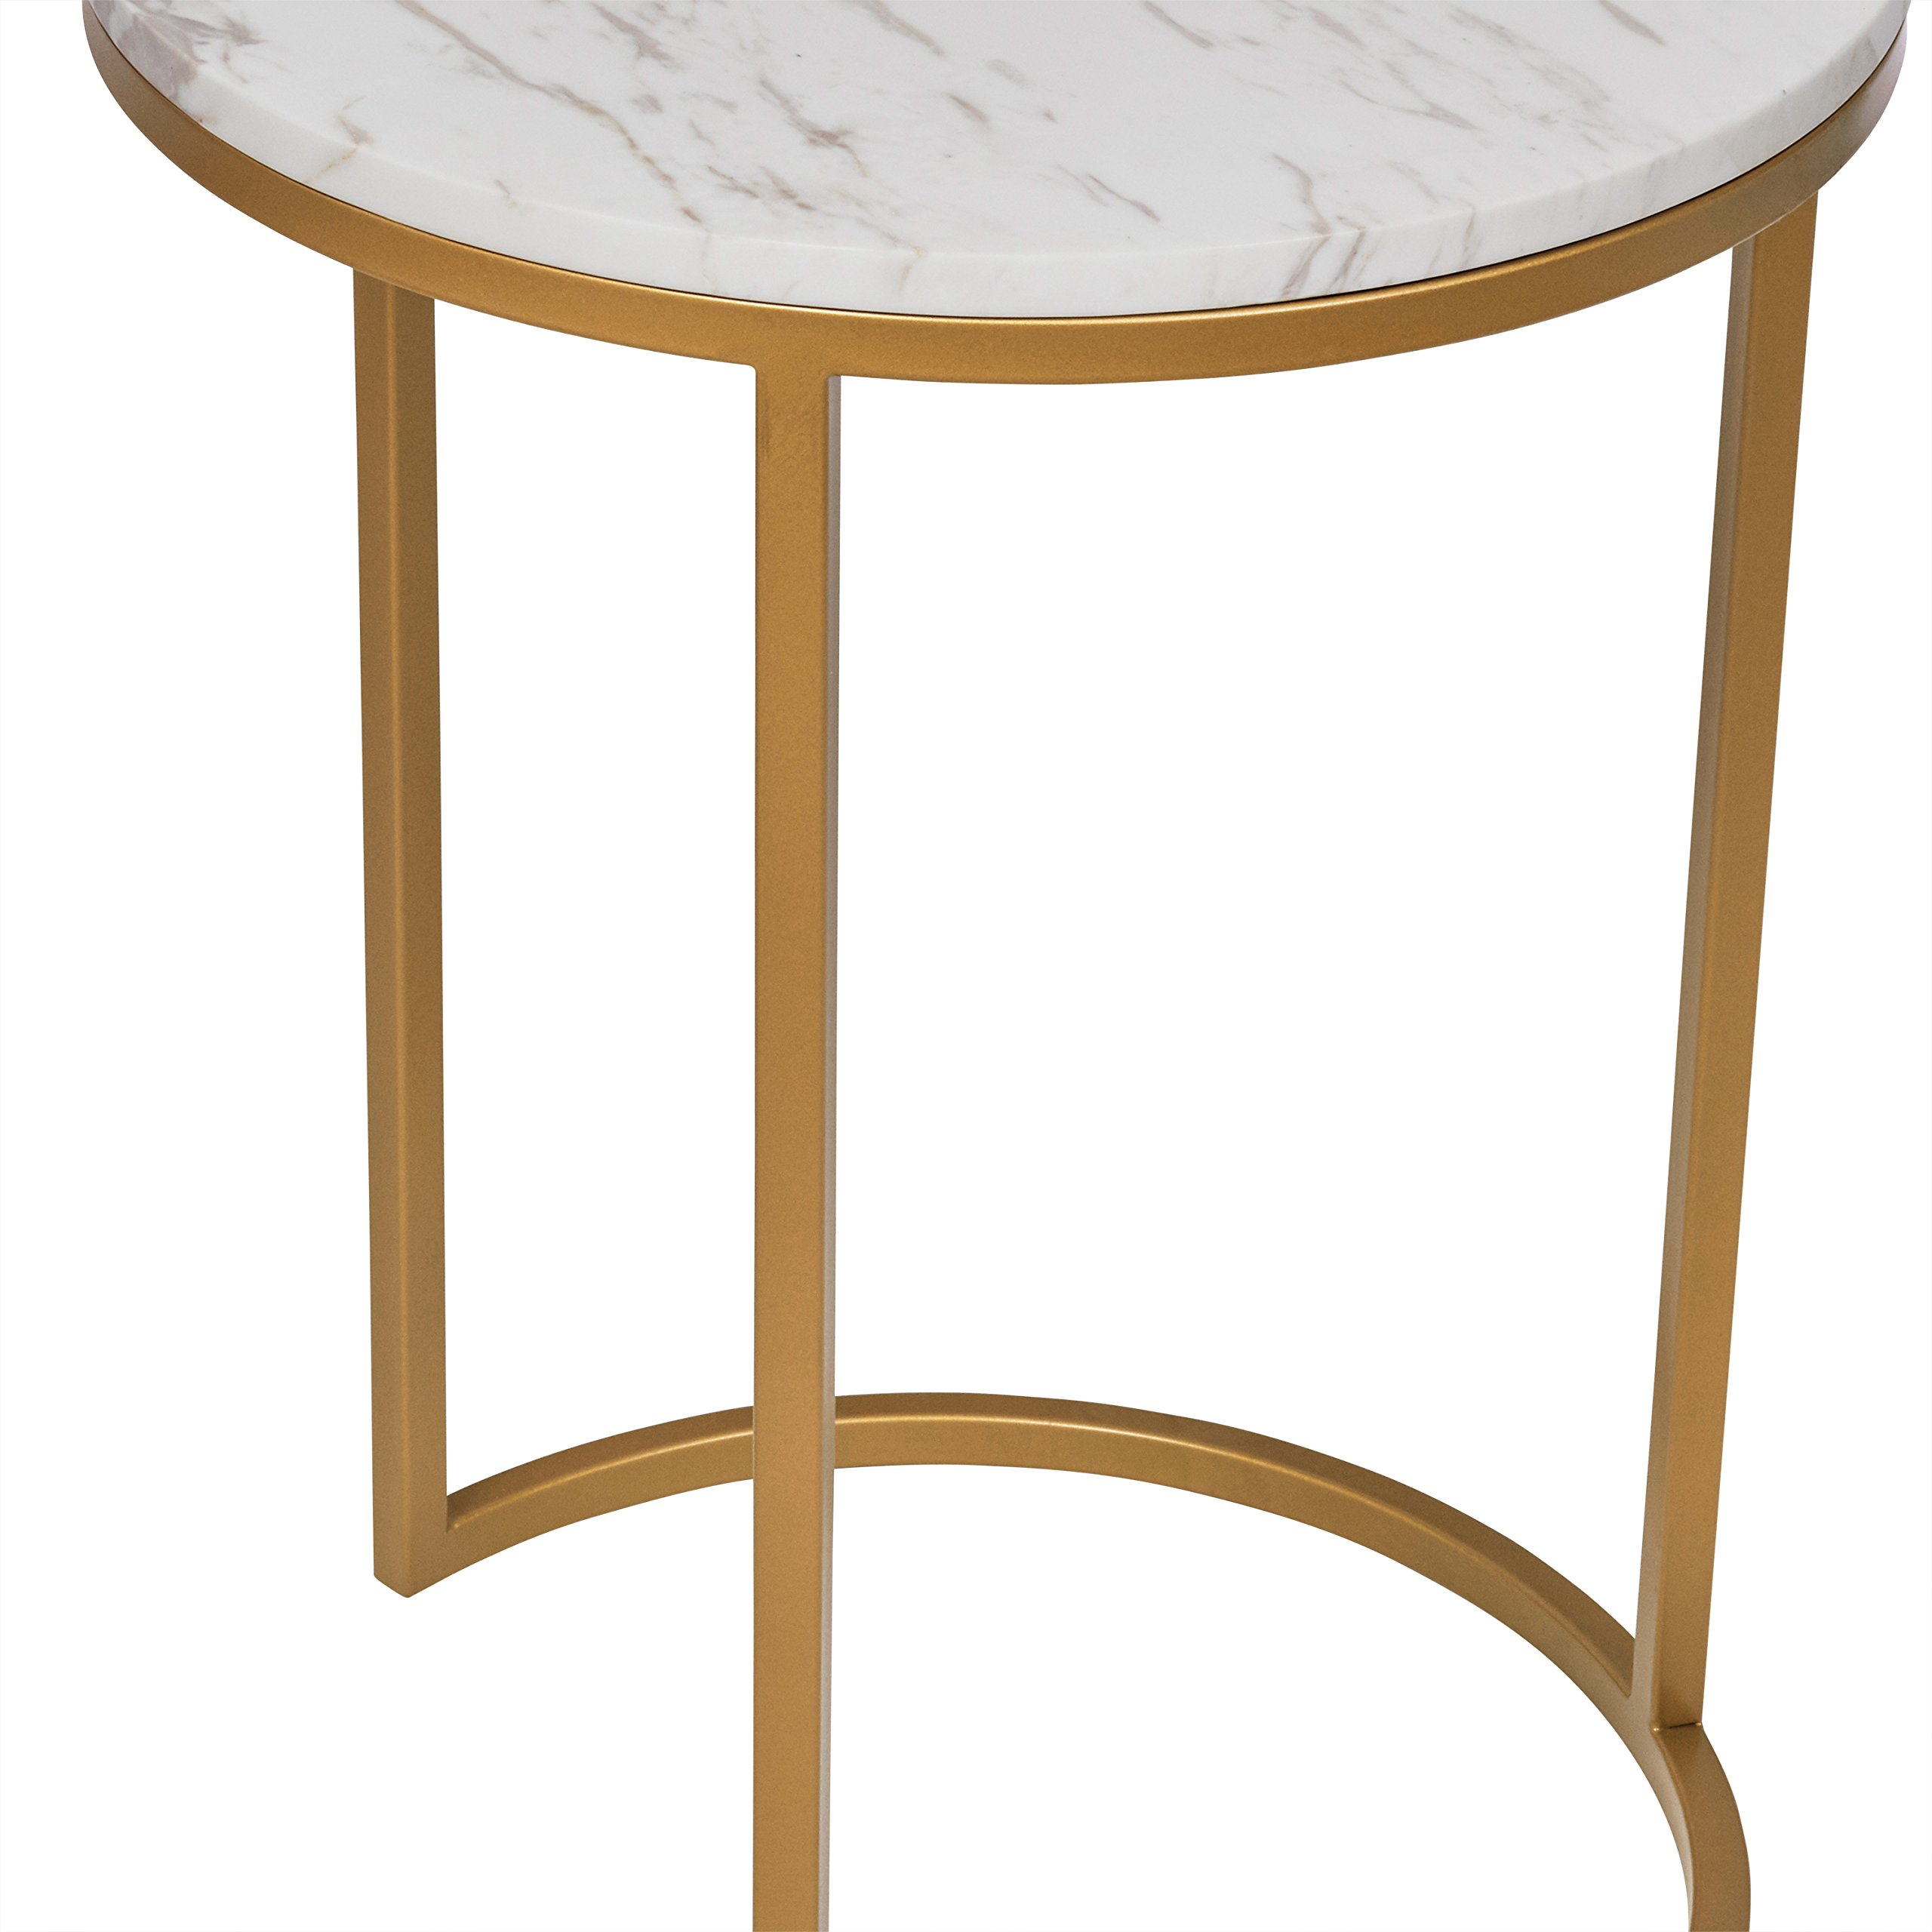 Rivet Circular Modern Marble and Gold Nesting Side Table, Set of 2, Marble/Gold by Rivet (Image #4)